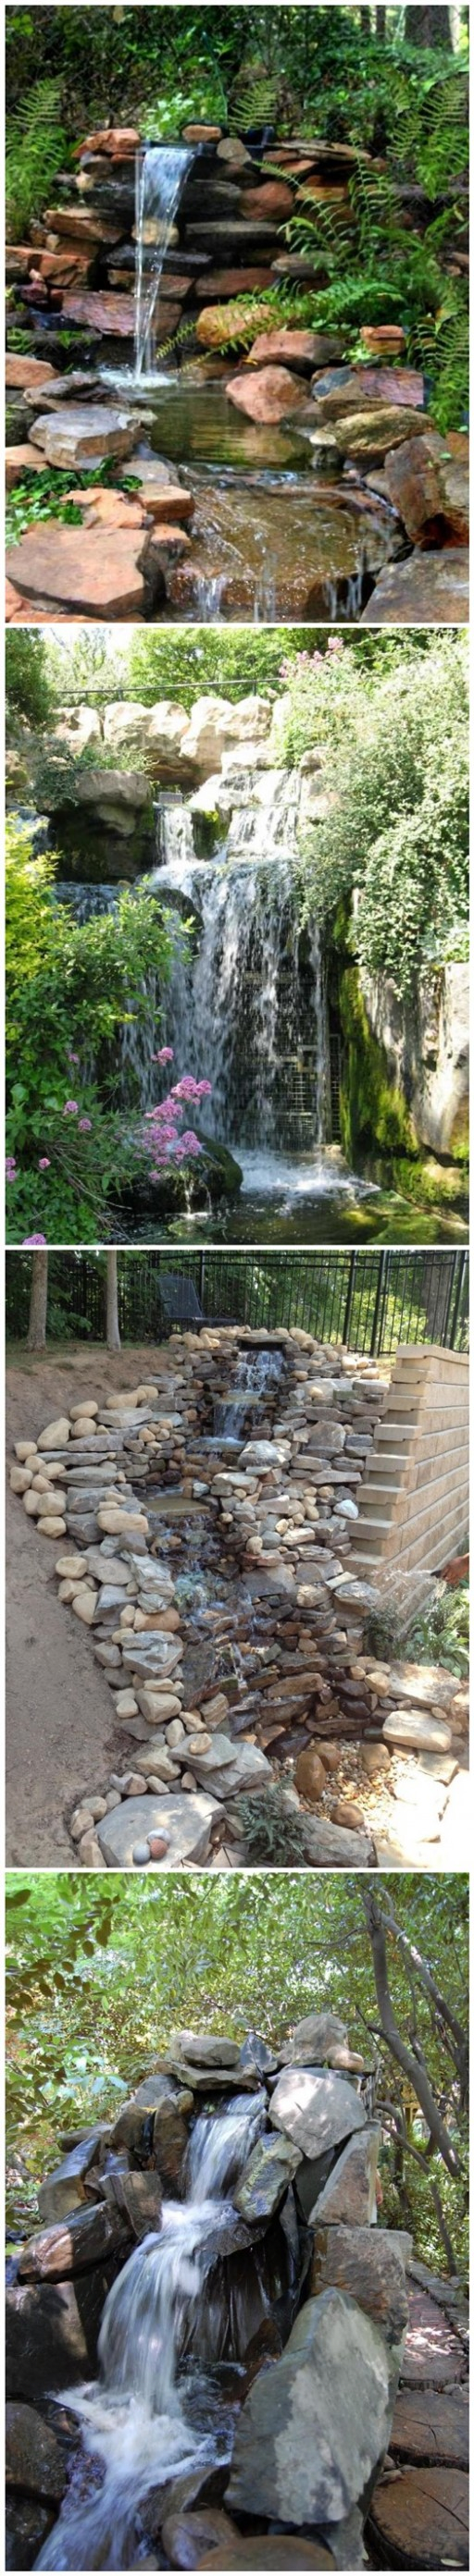 How To Build A Garden Waterfall Pond 1 ...